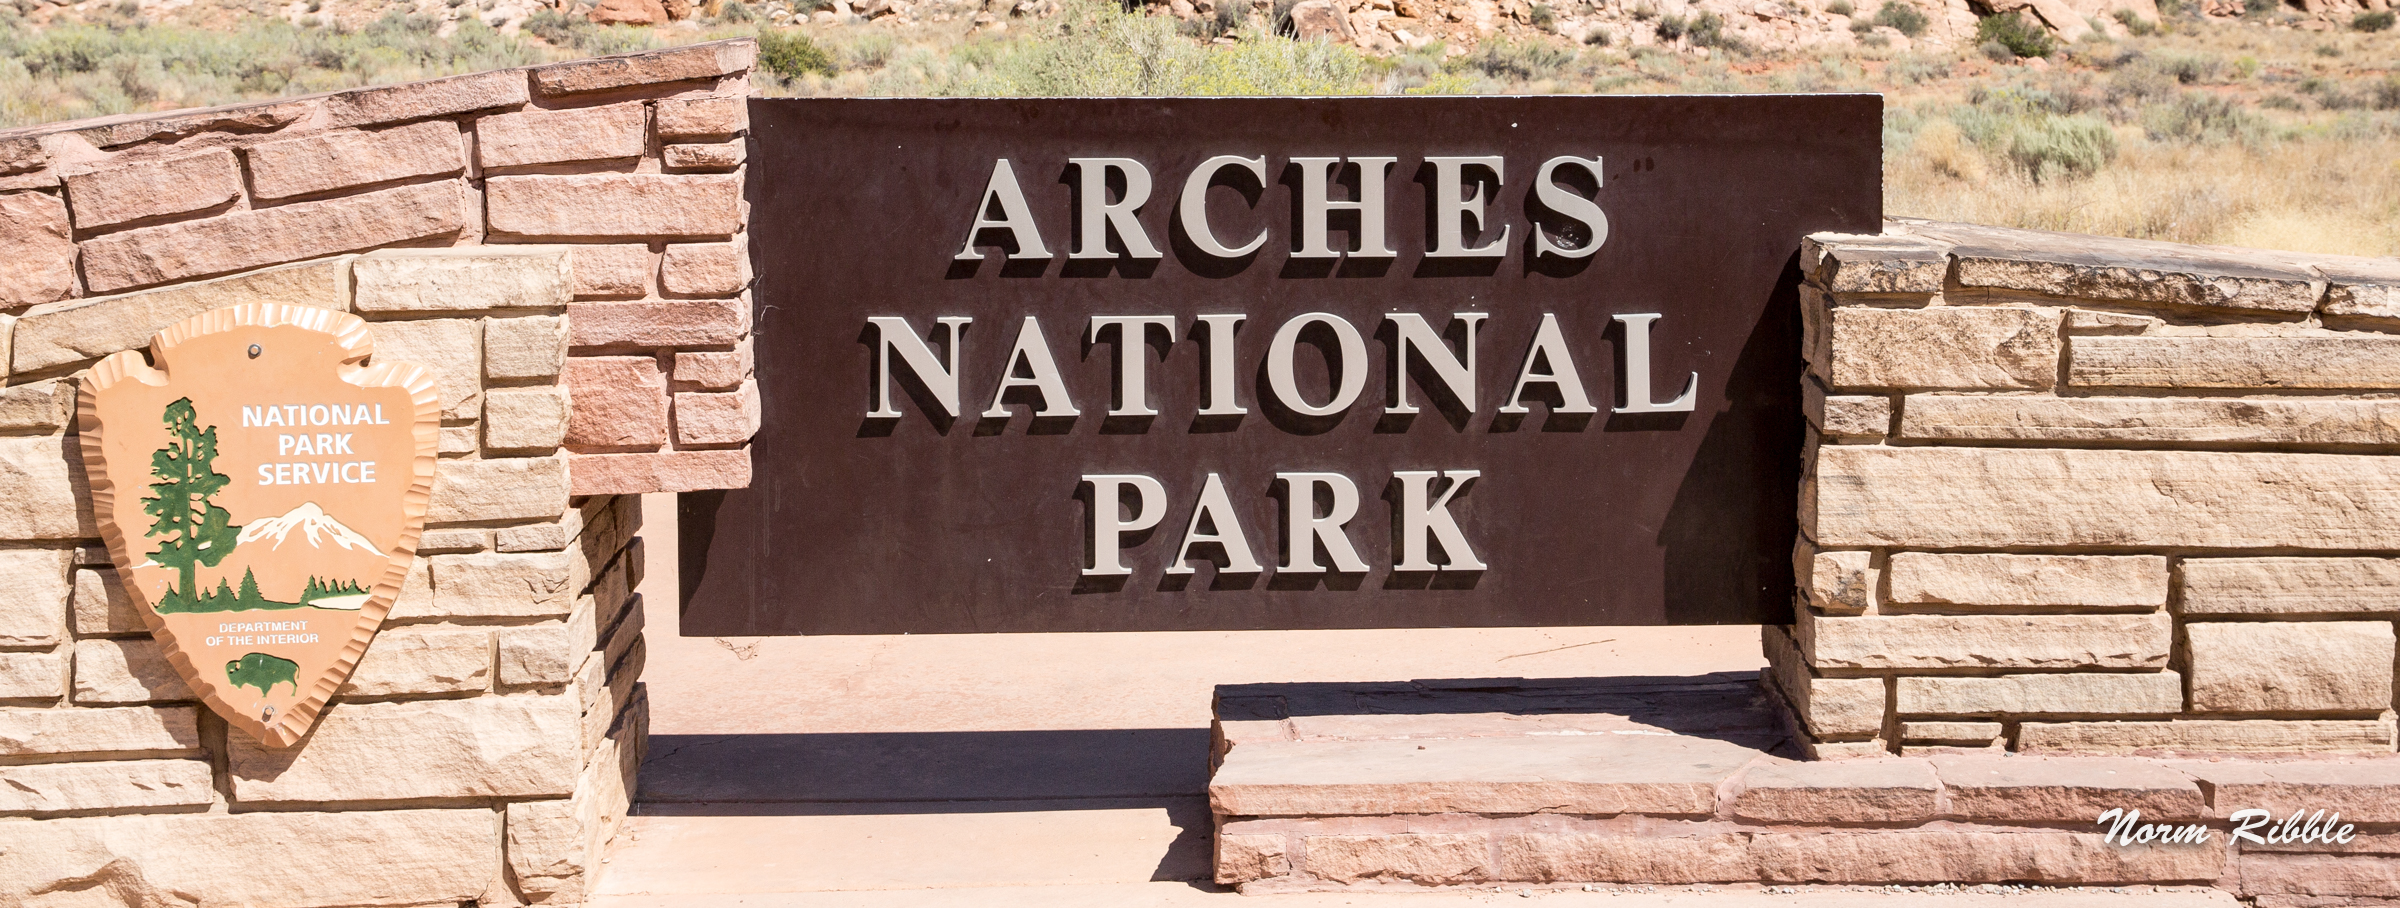 arches 56